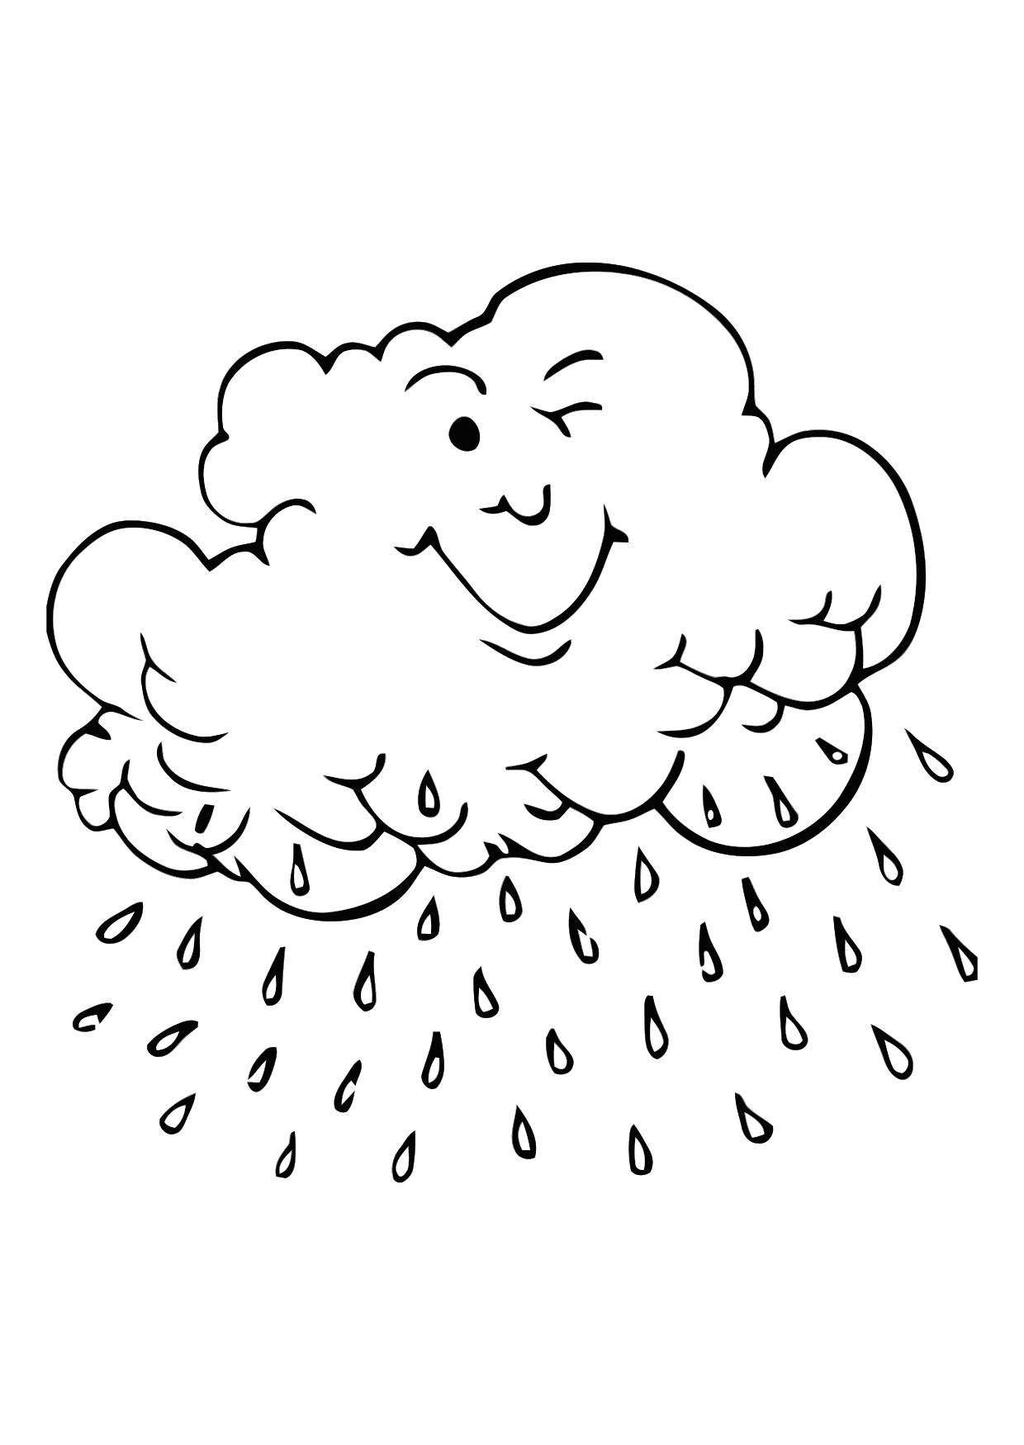 Sun And Clouds Coloring Pages Cloud Kids Lineart - Free Printable ...